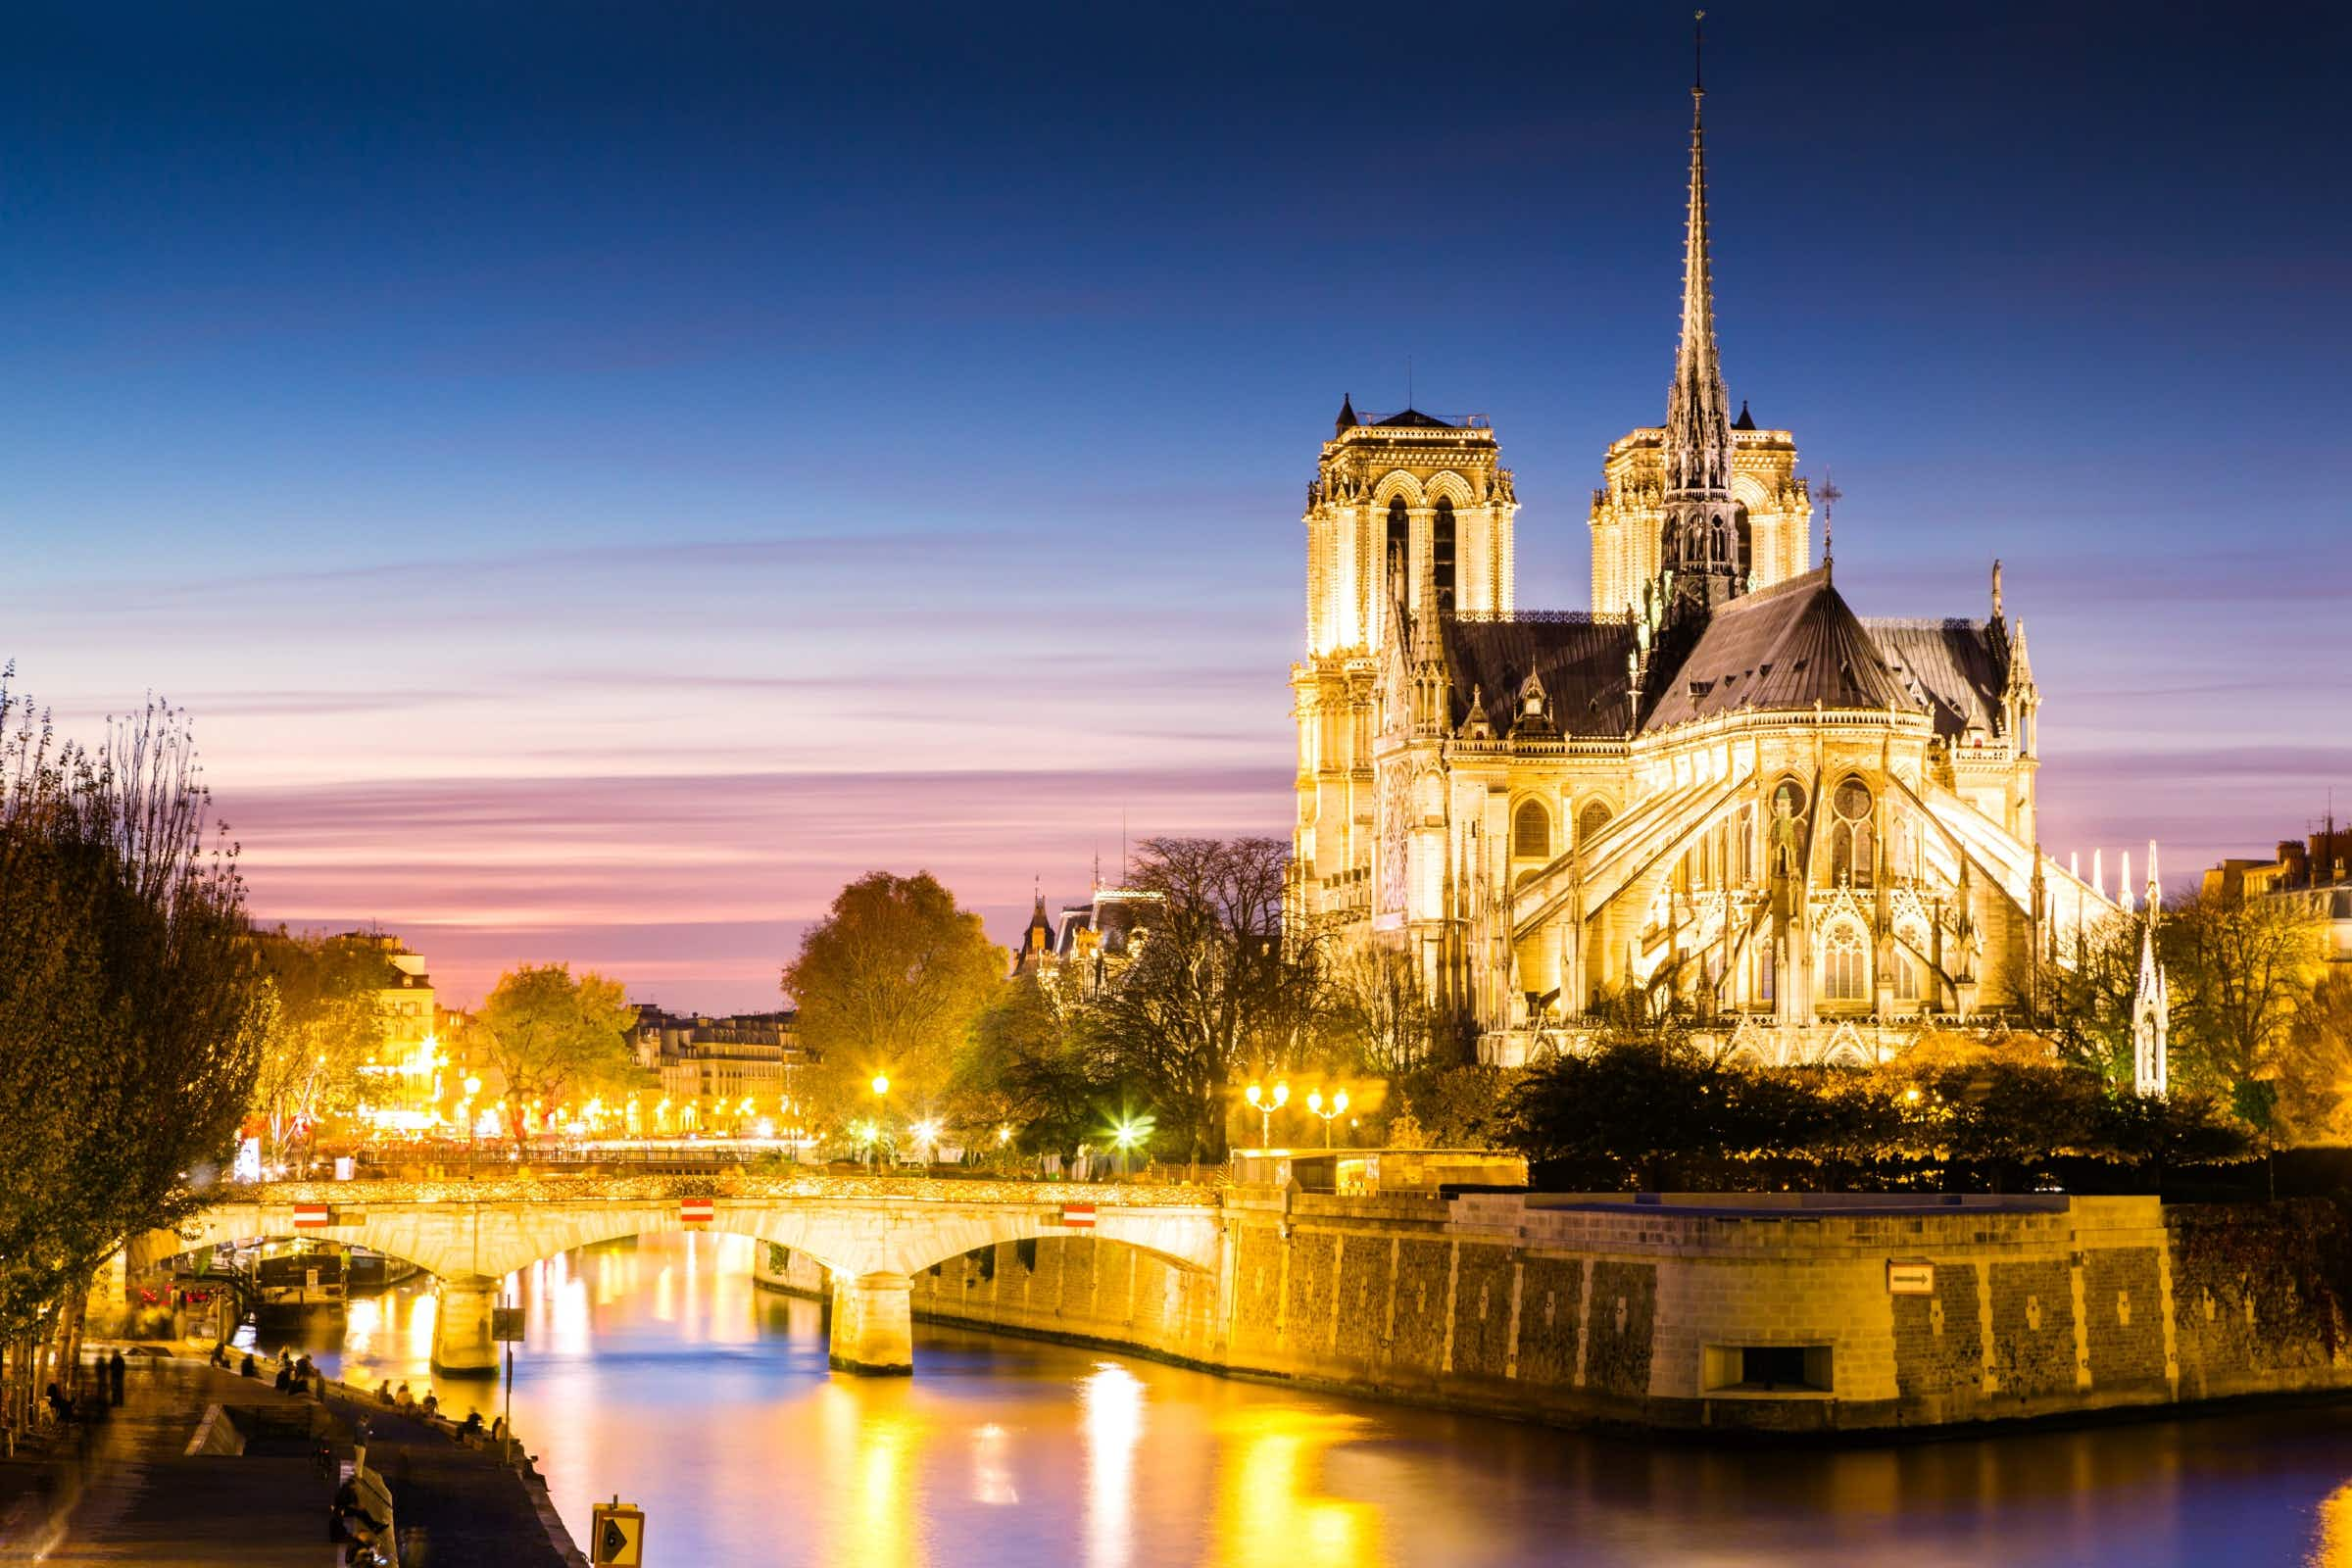 Notre Dame attracted 13 million visitors annually prior to the fire © Matteo Colombo/Getty Images